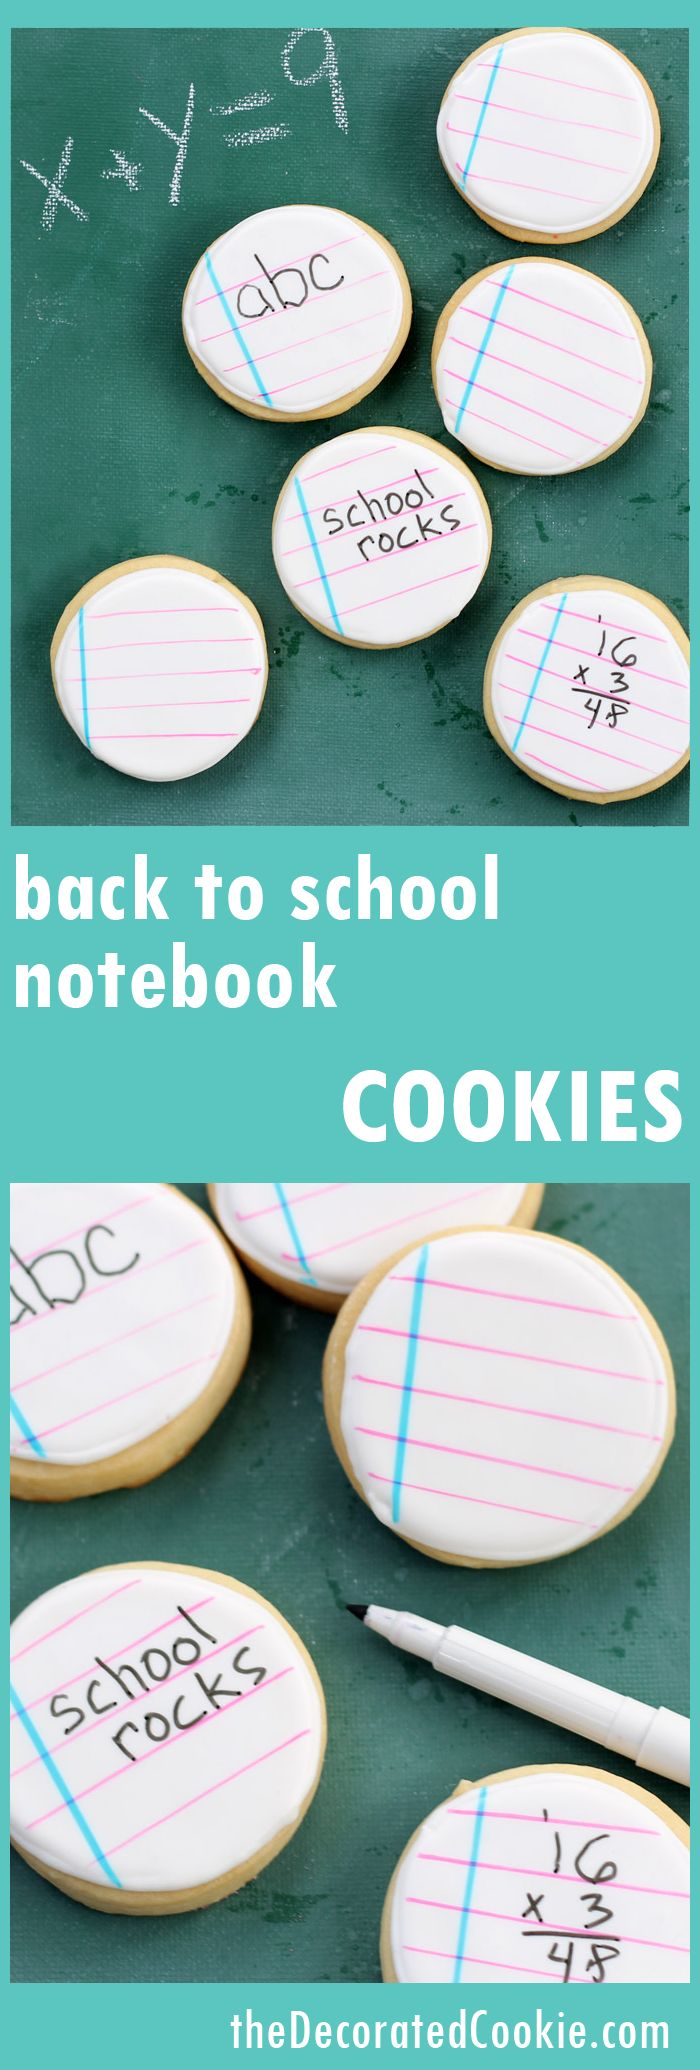 back to school cookies: notebook cookies you can write on